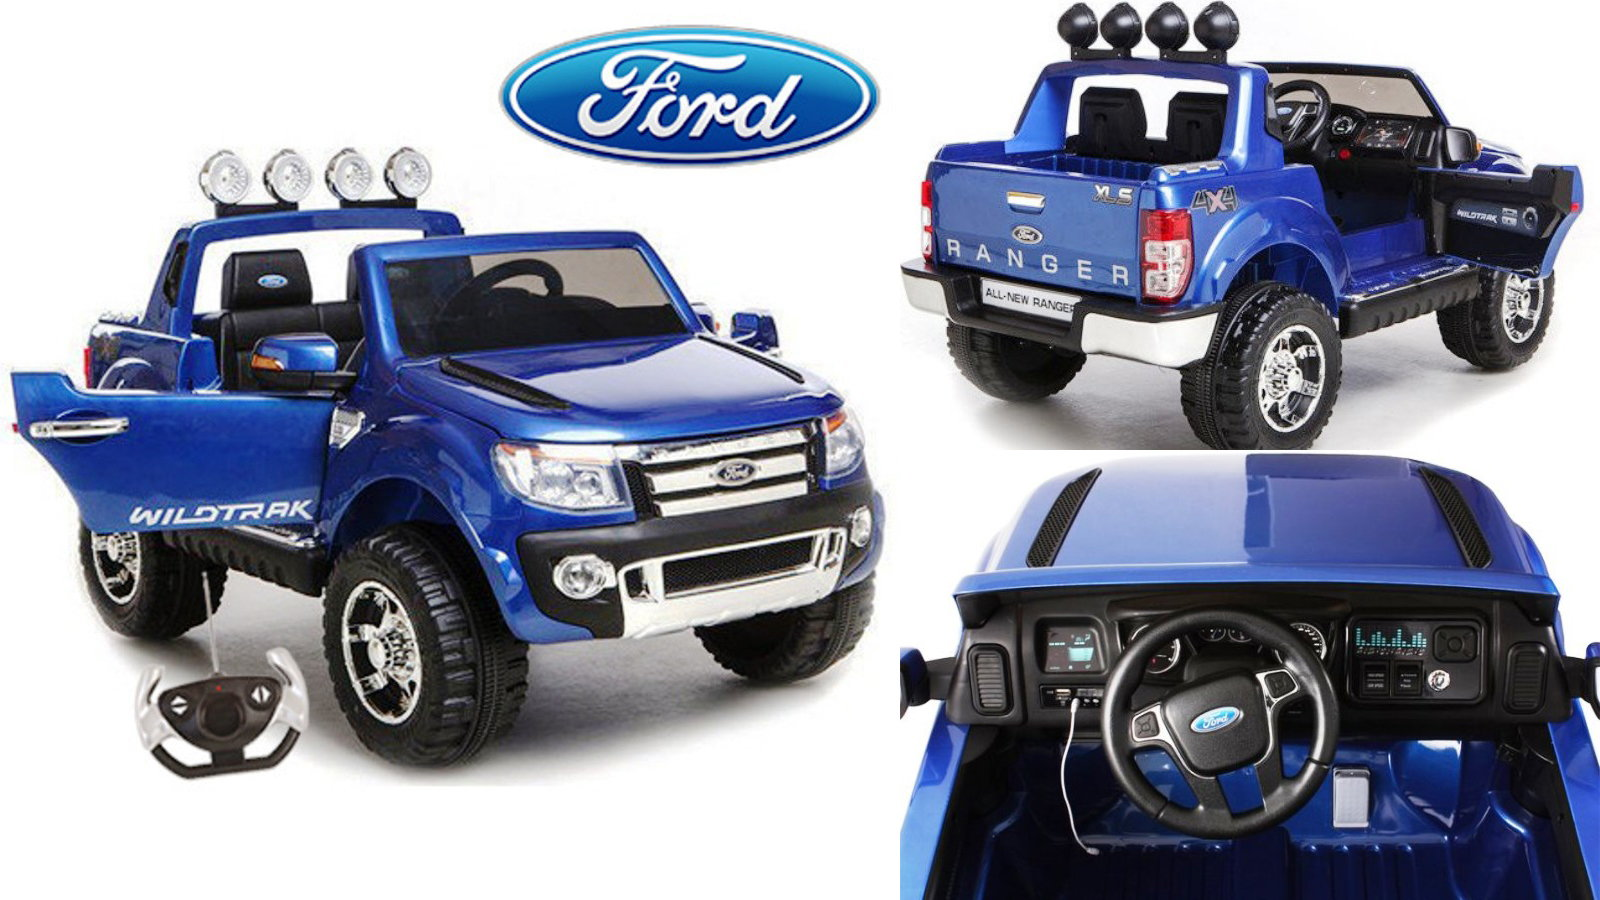 Electric Remote Control Ride On Ford Ranger